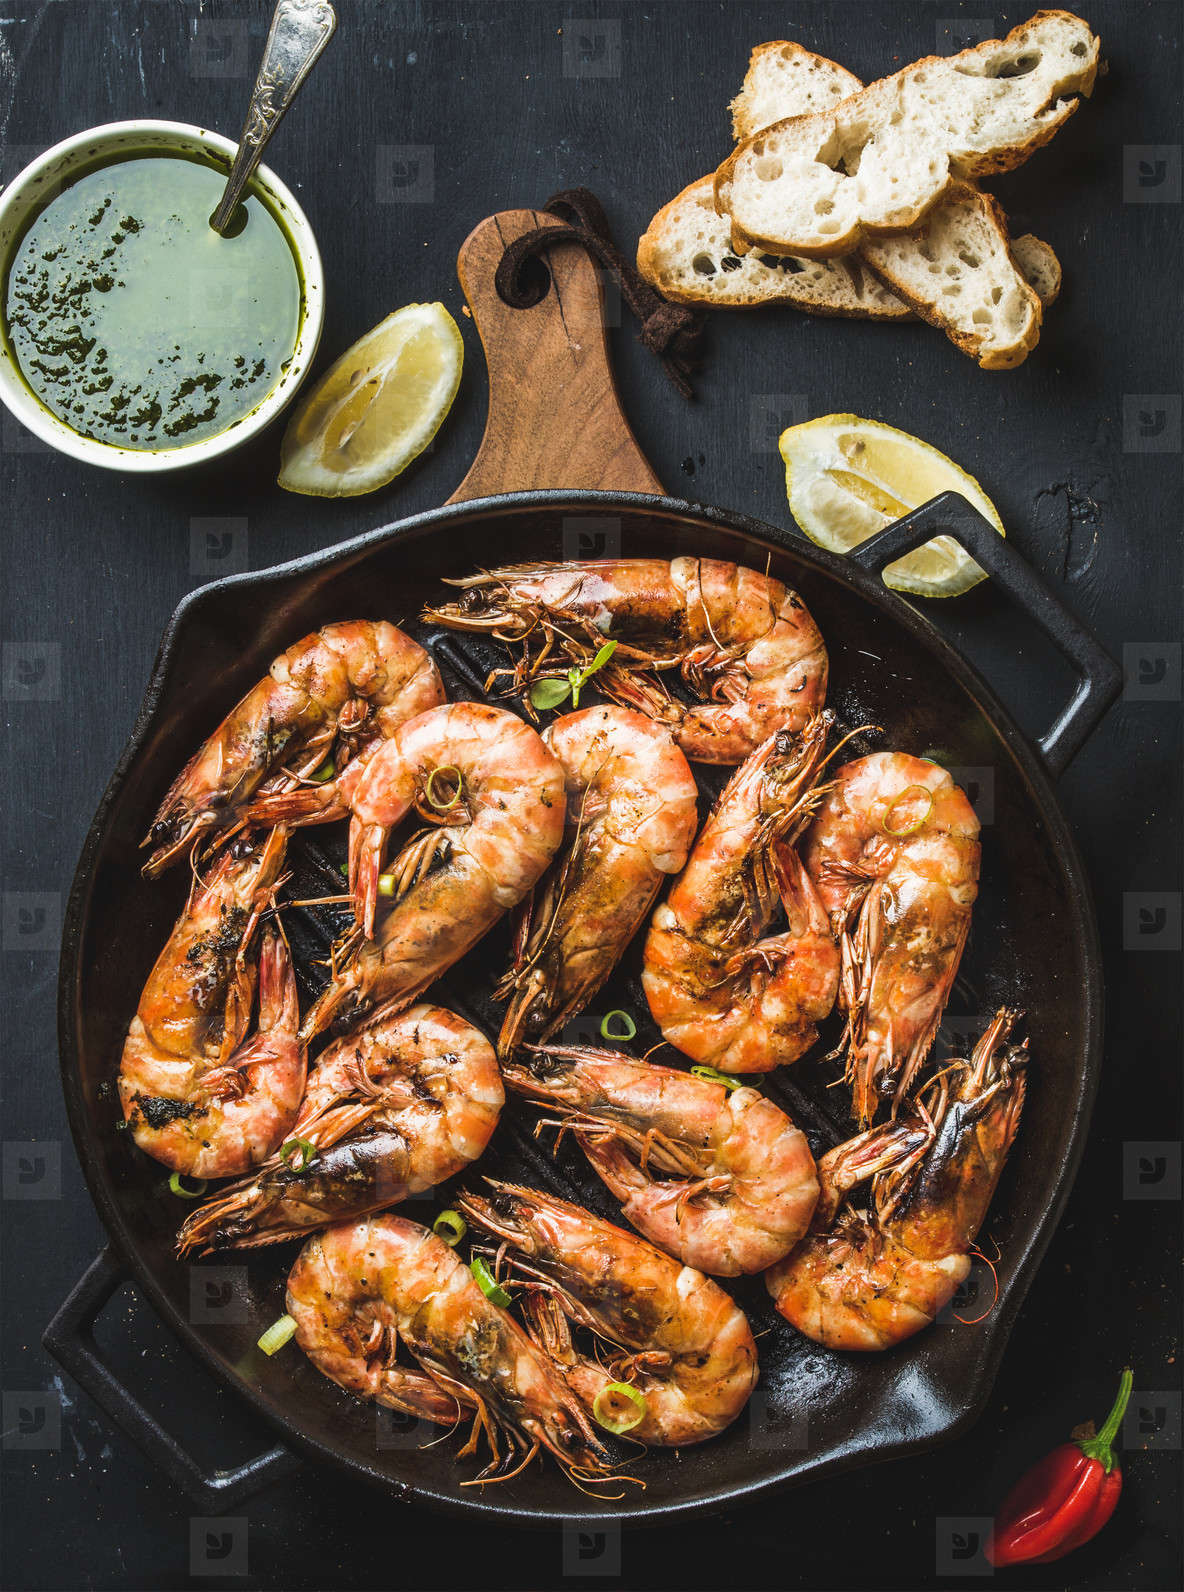 Roasted tiger prawns in iron grilling pan on wooden board